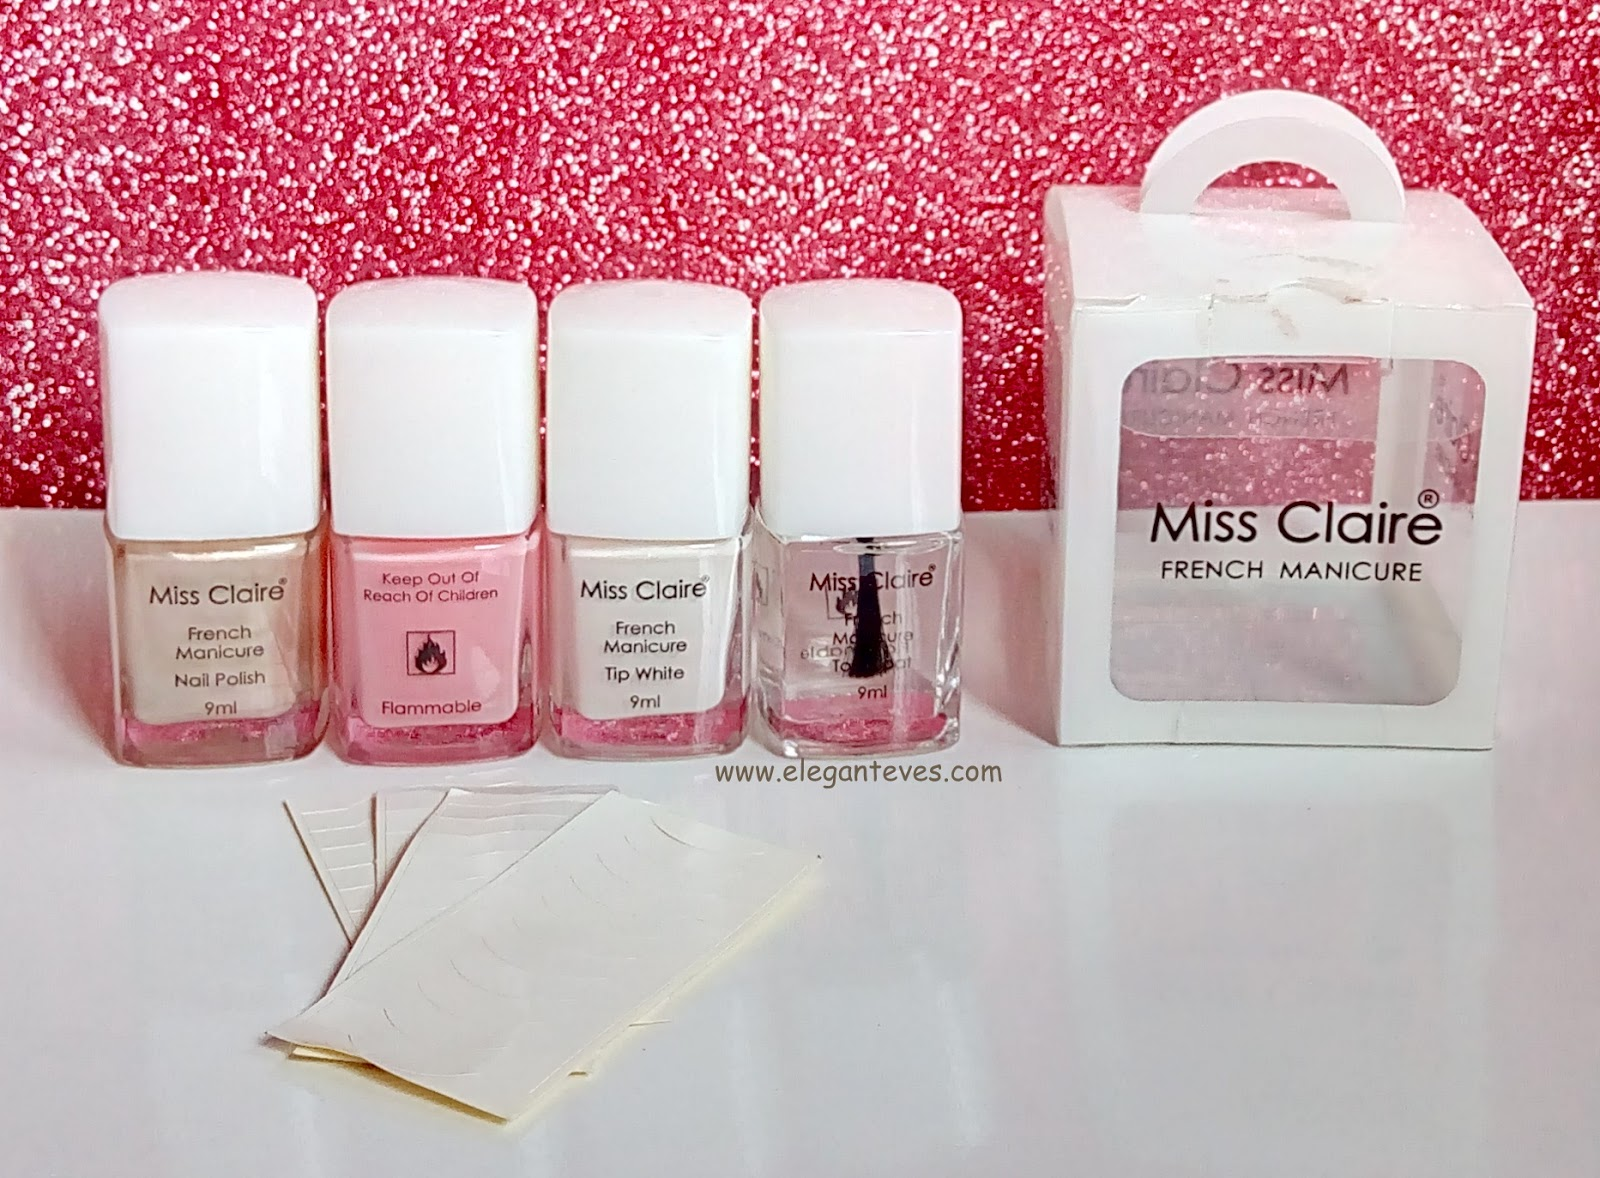 Review of Miss Claire French Manicure Kit - Elegant Eves